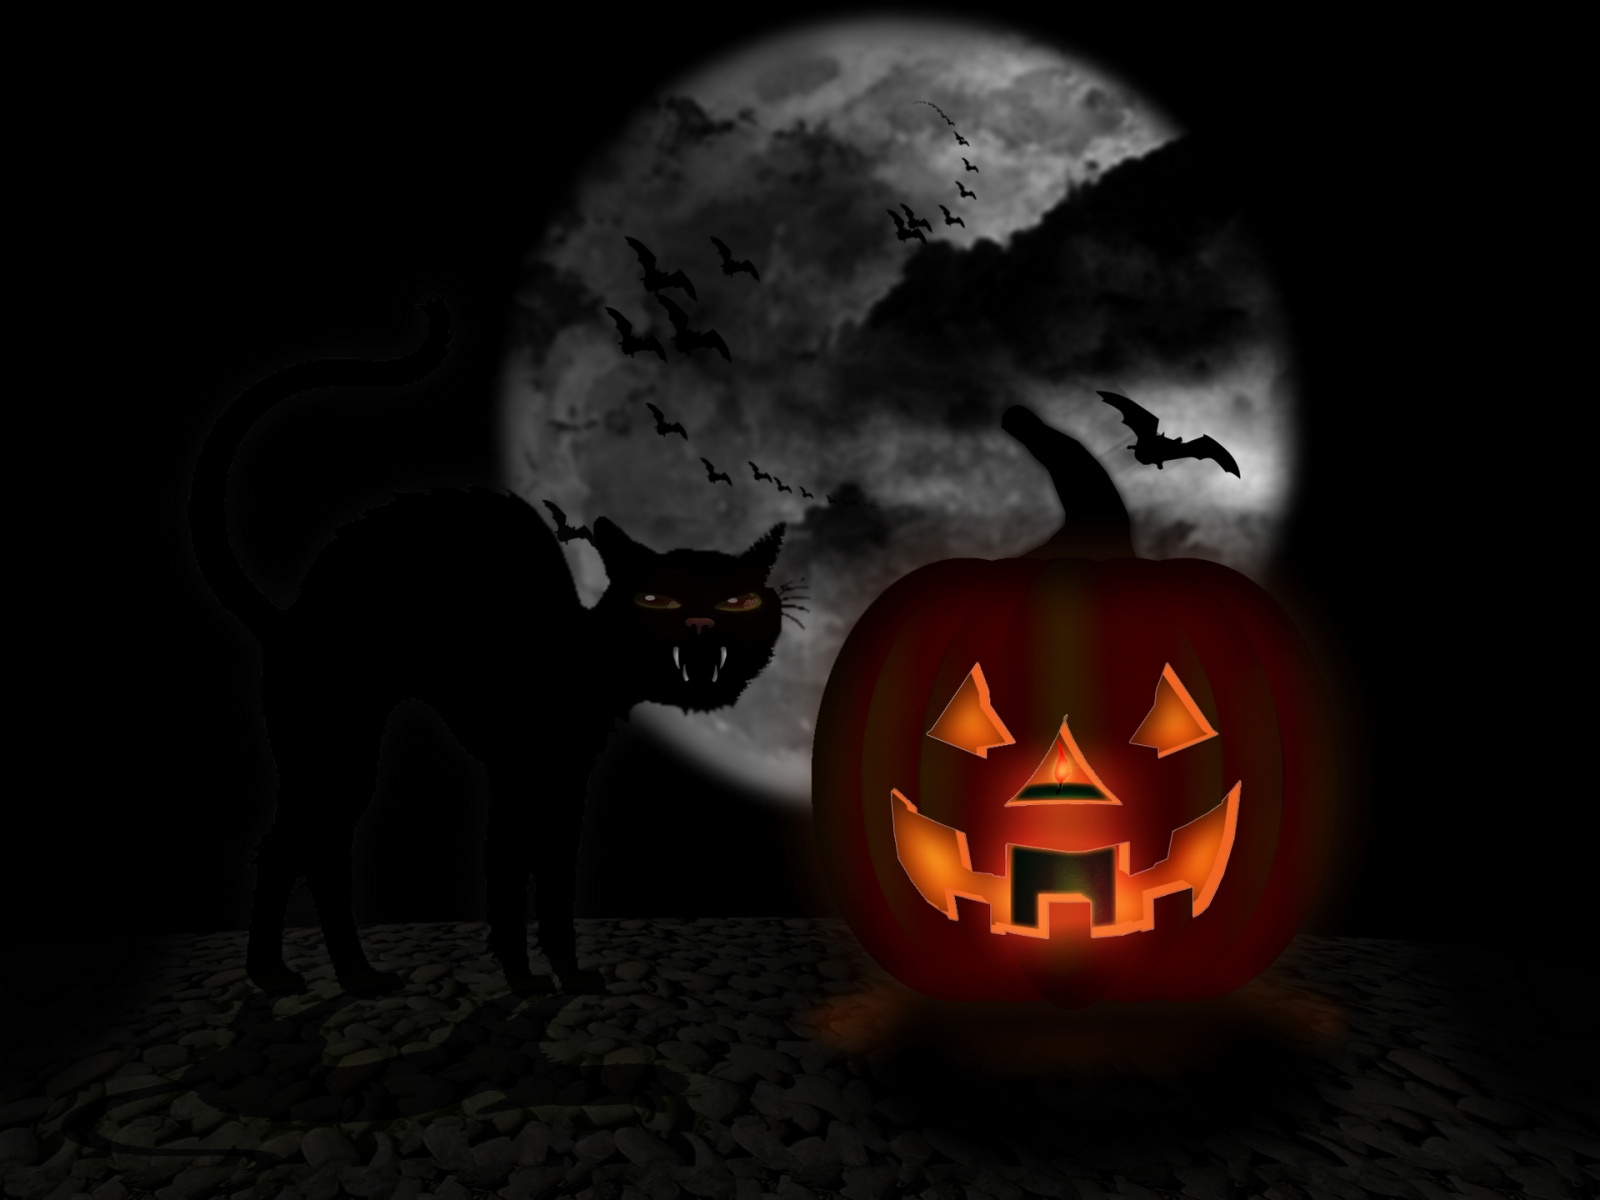 halloween desktop backgrounds microsoft With Resolutions 16001200 1600x1200